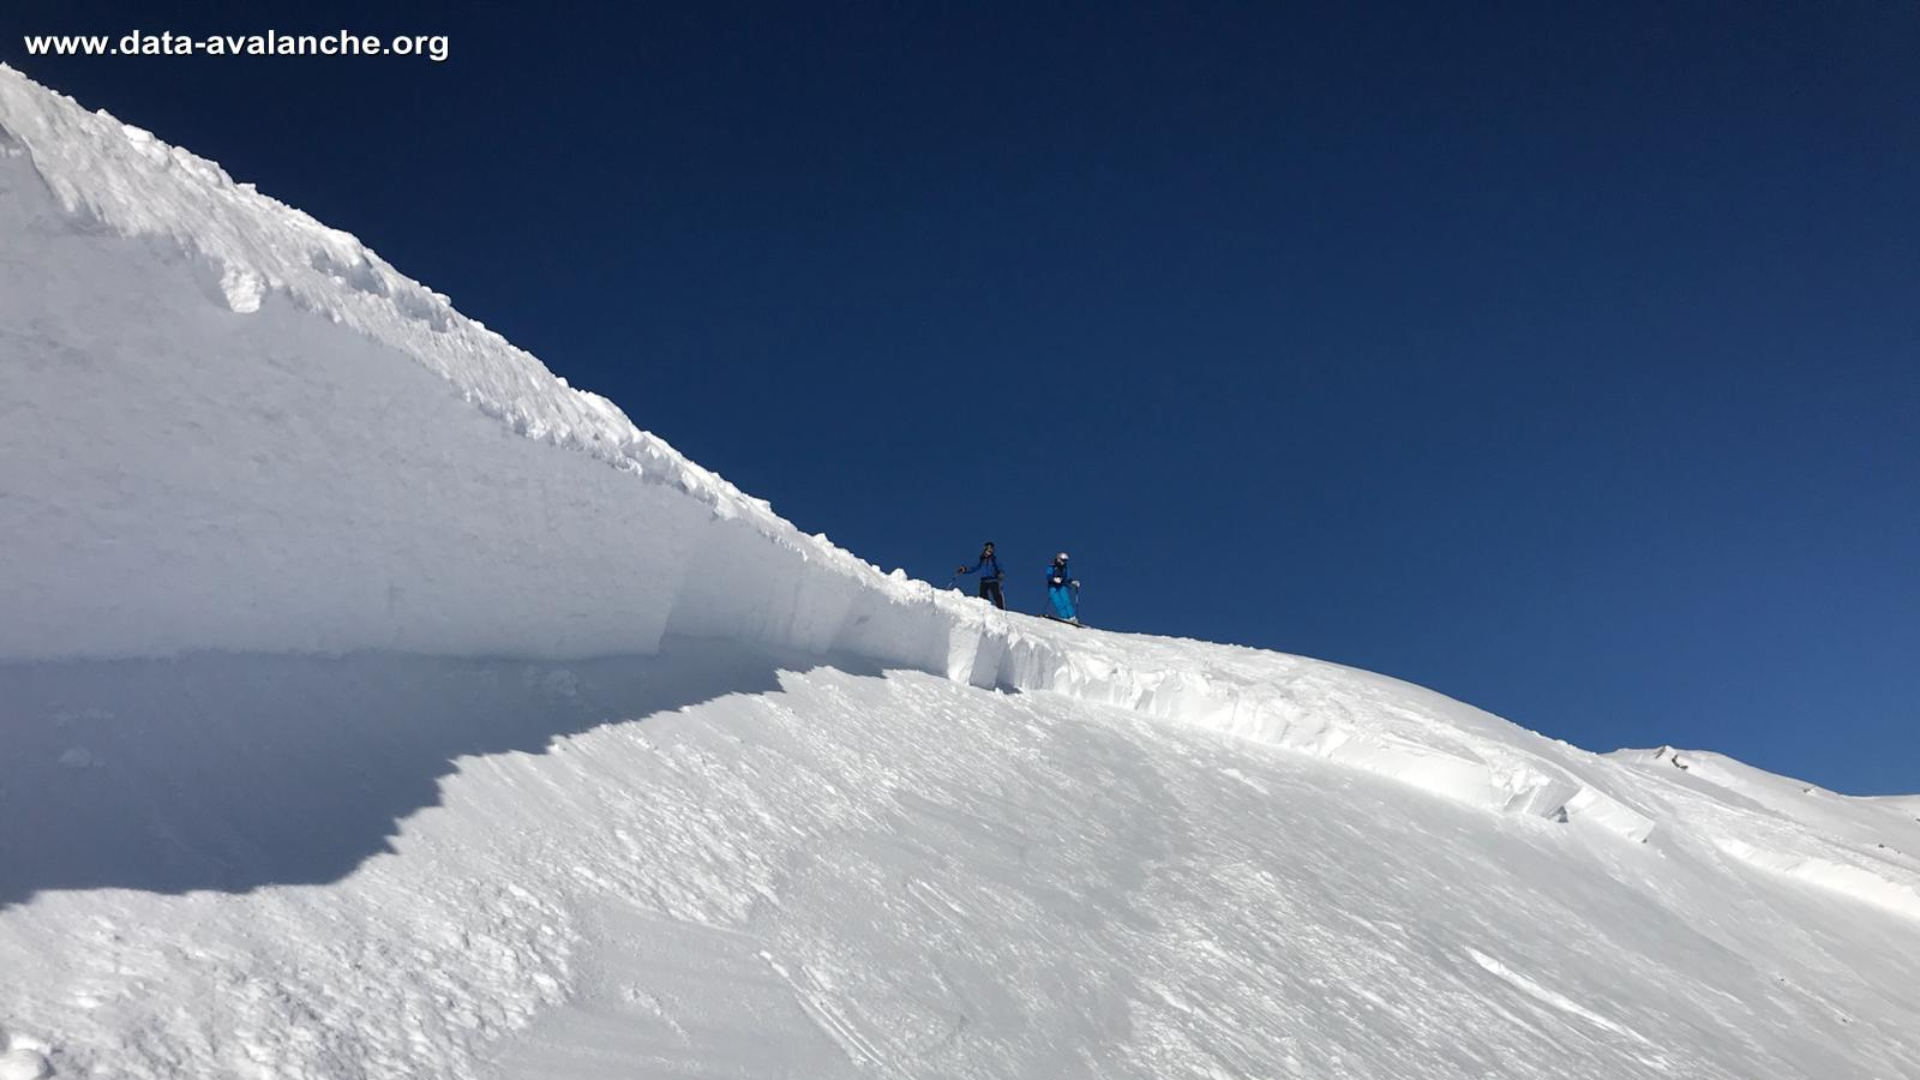 Case Study - Avalanche in Val d'Isere